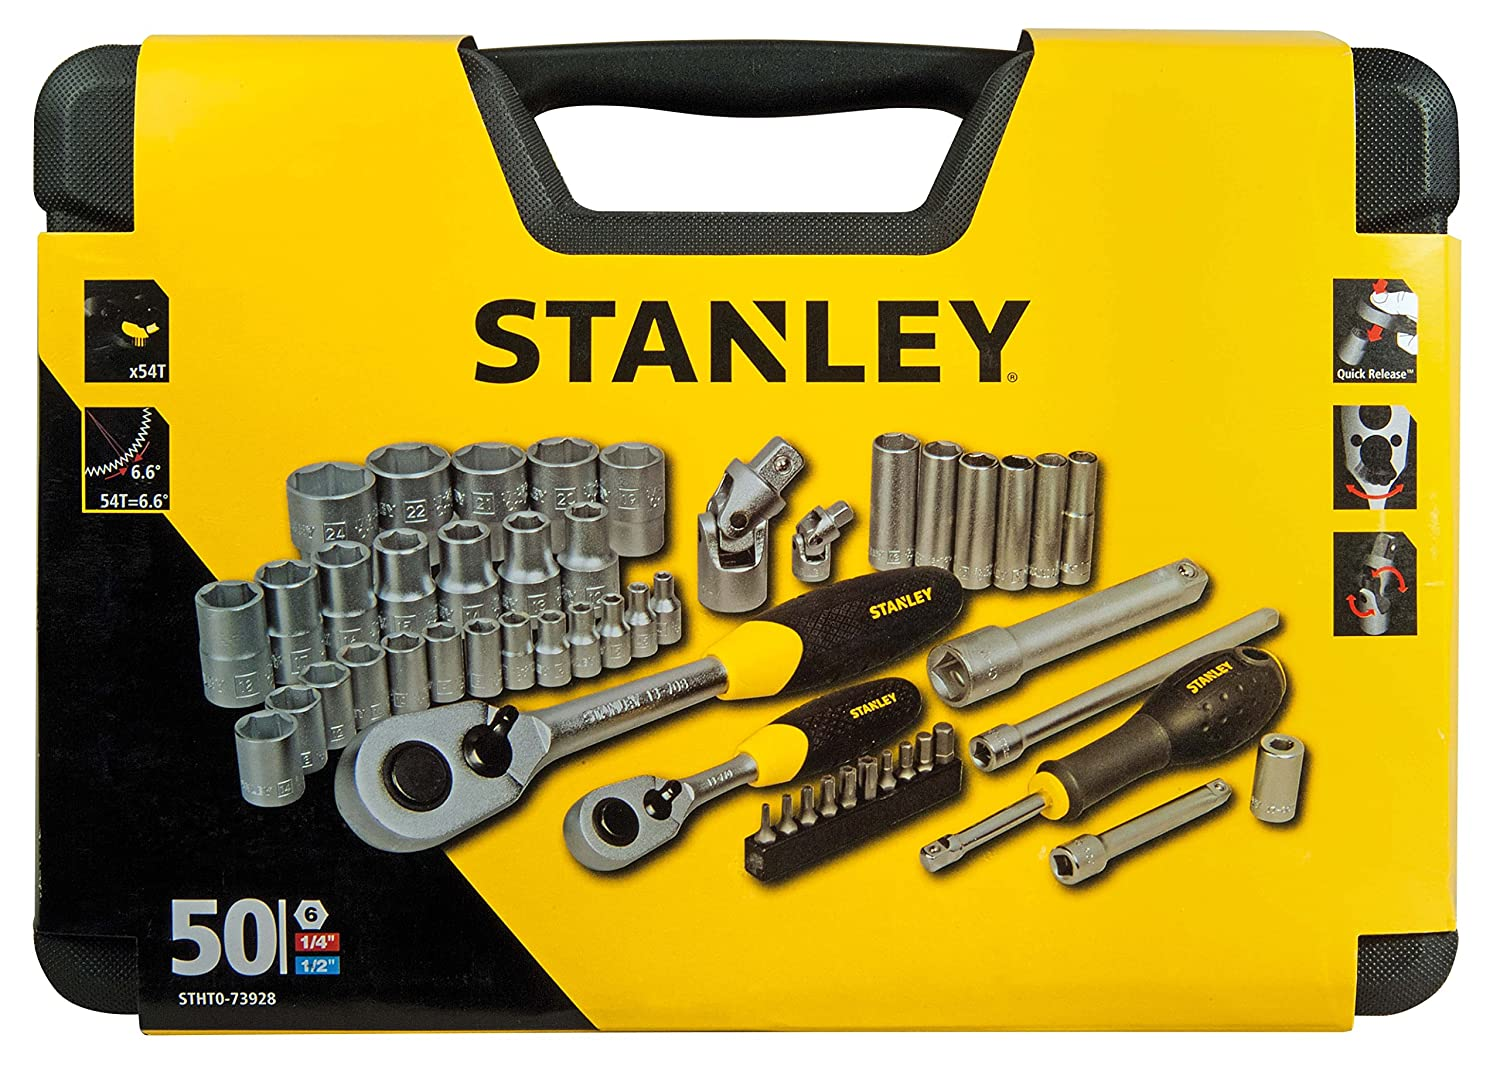 Stanley STHT0-73401 Socket FM Wrench Set Set of 30 Pieces Silver 1//2-Inch